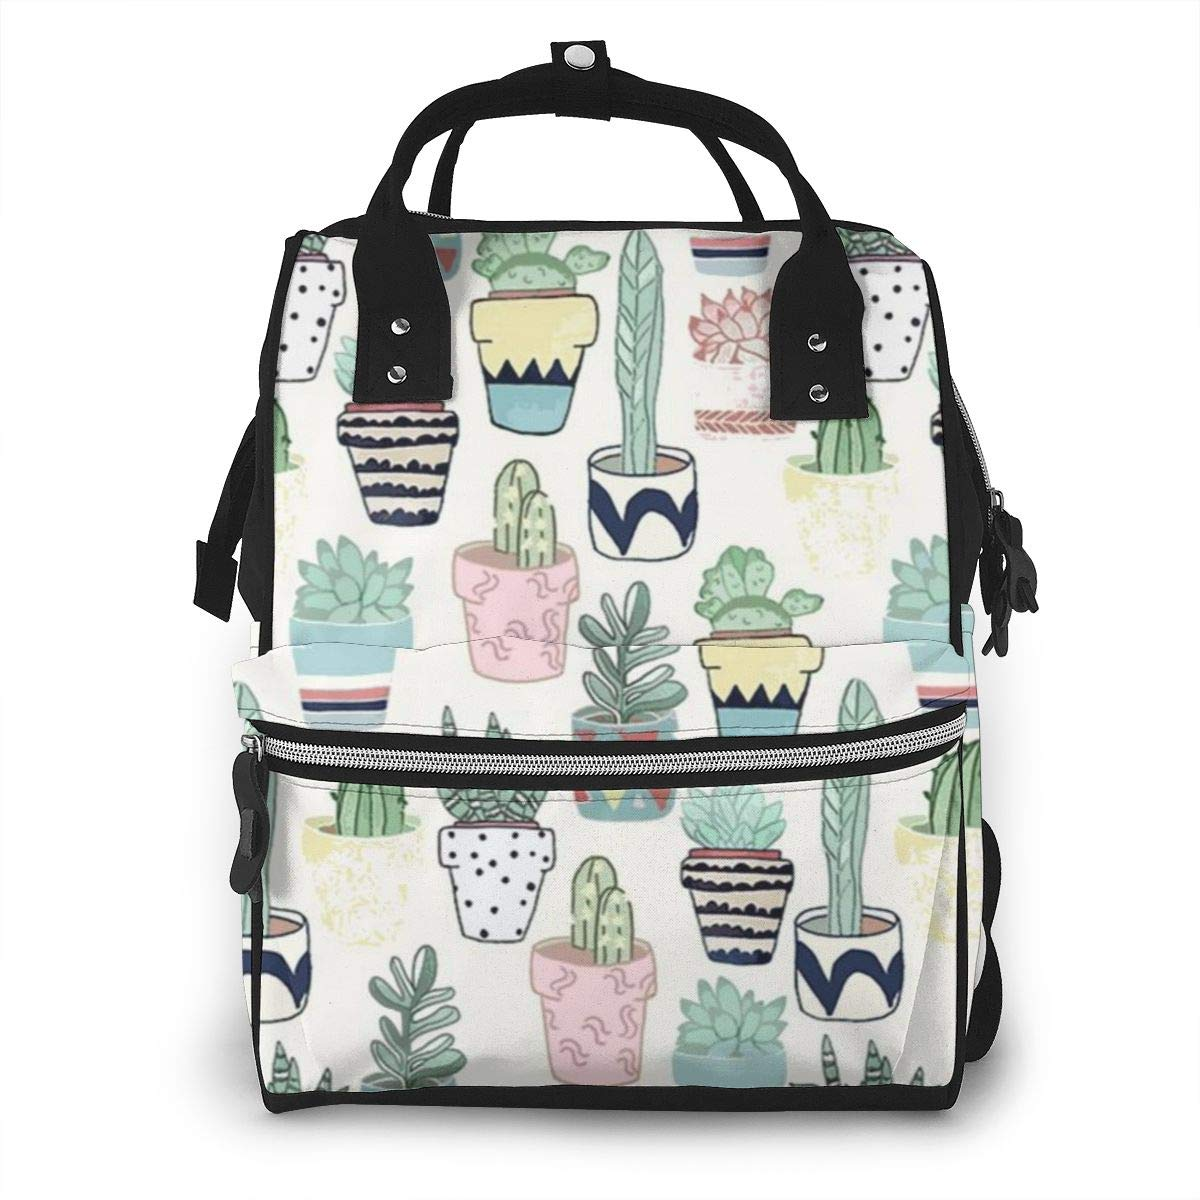 Diaper Bag Potted Plants Backpack,Back Pack Multi-Functional Waterproof Travel Maternity Baby Changing Bags Nappy Baby Care for Mom Dad